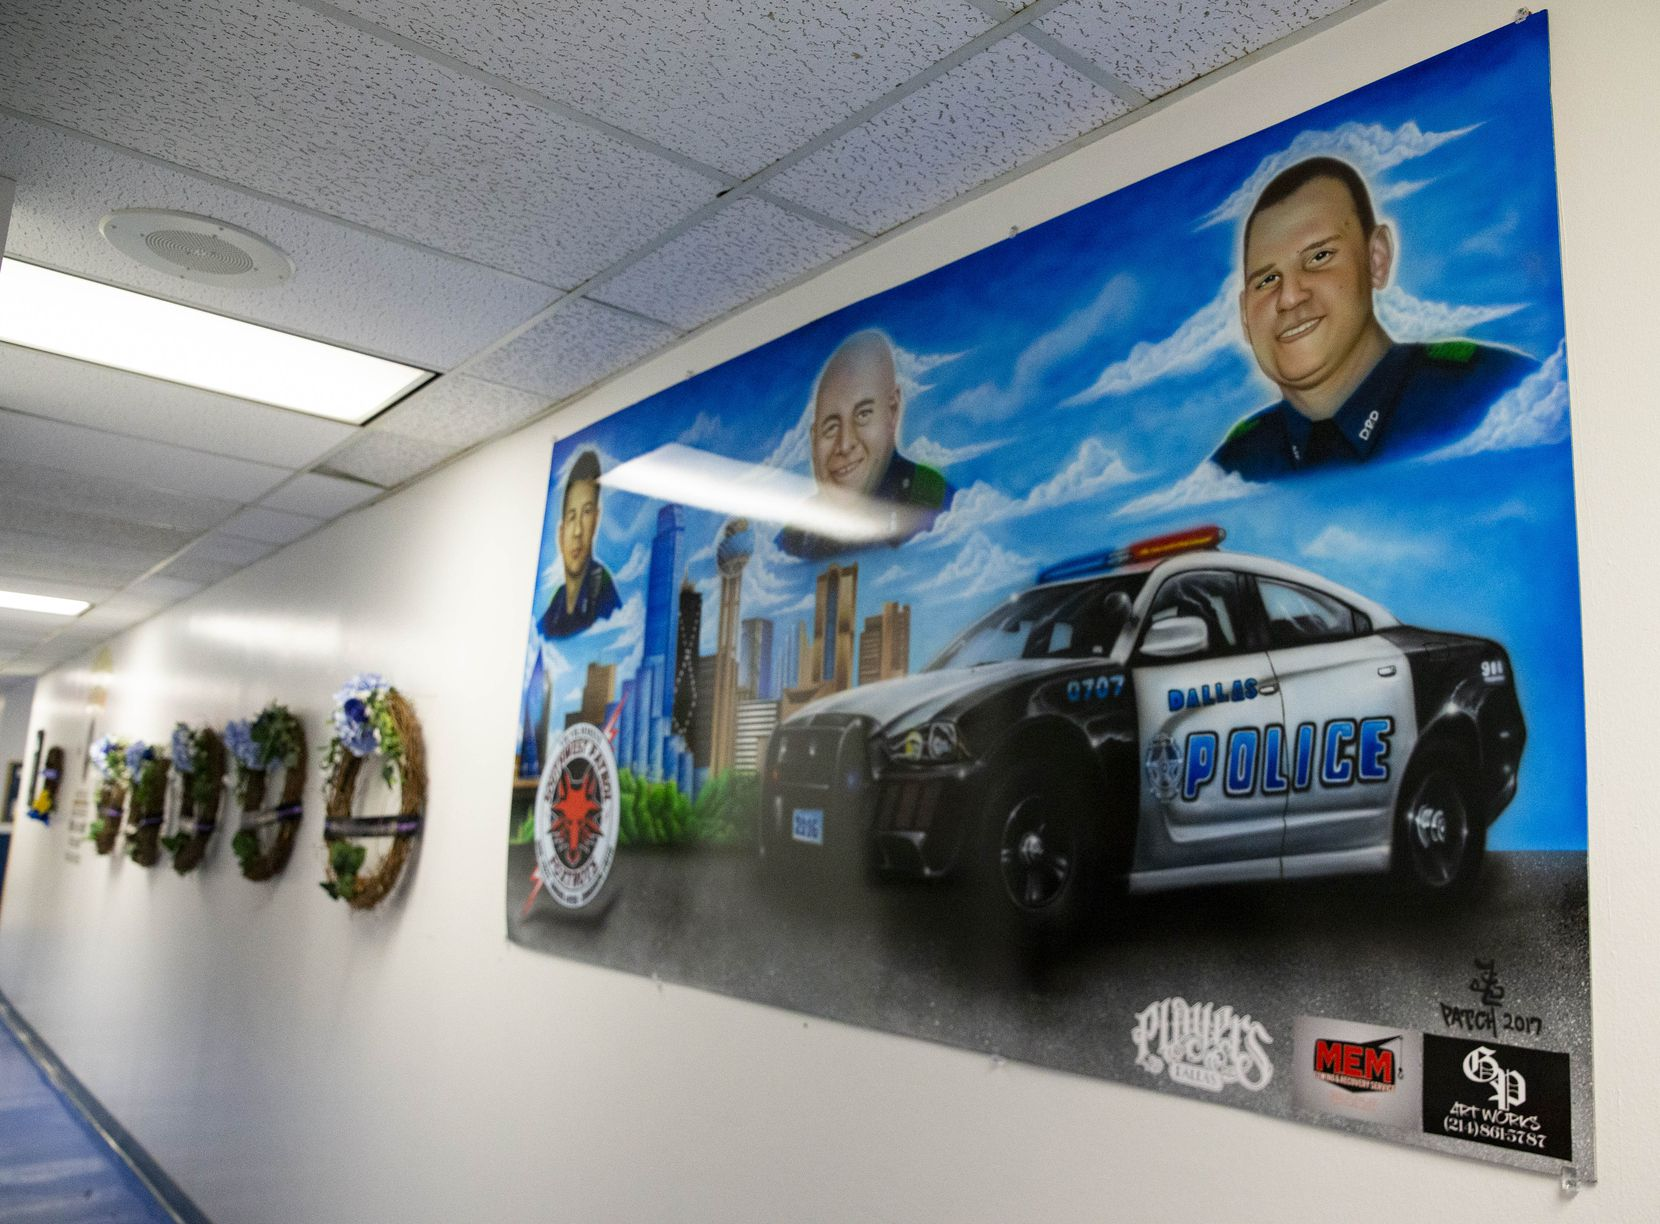 A painting dedicated to the three of the five Dallas police officers who were killed when a gunman ambushed an evening of protests in downtown Dallas in 2016, photographed on Friday, July 2, 2021, at the DPD Southwest Patrol division in Dallas.